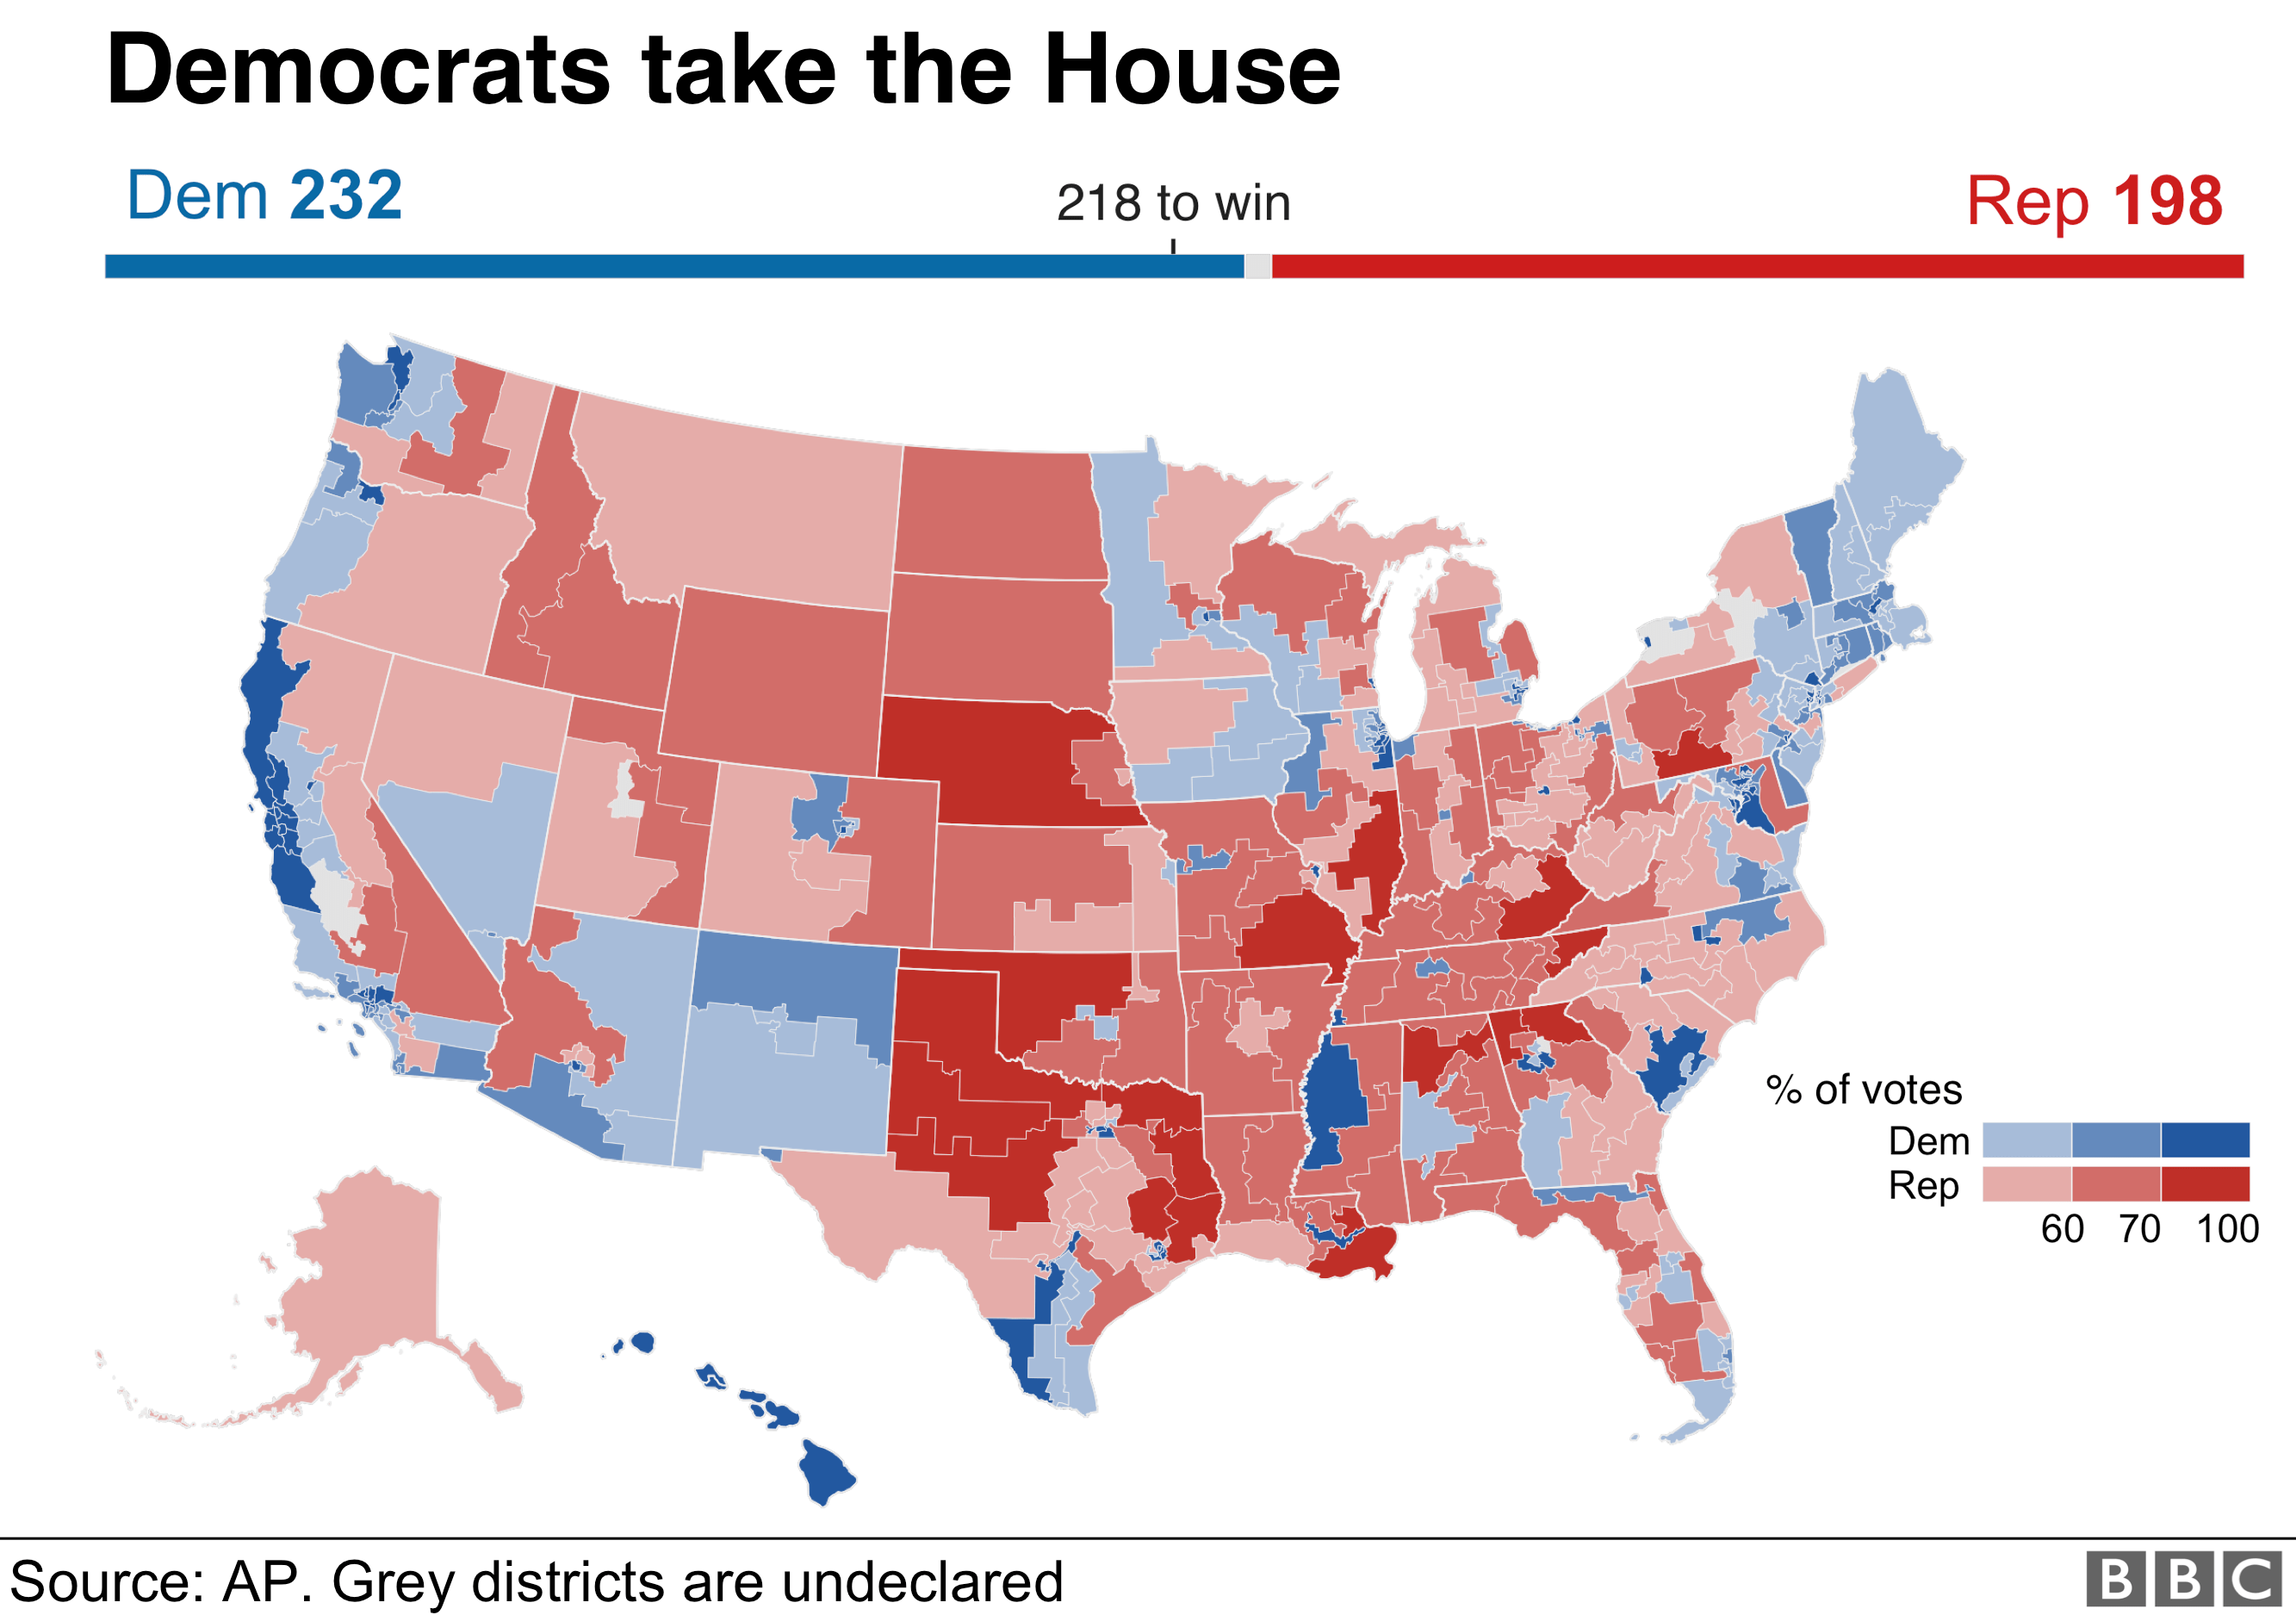 A map of party control of US House of Representative districts as of November 20, 2018.